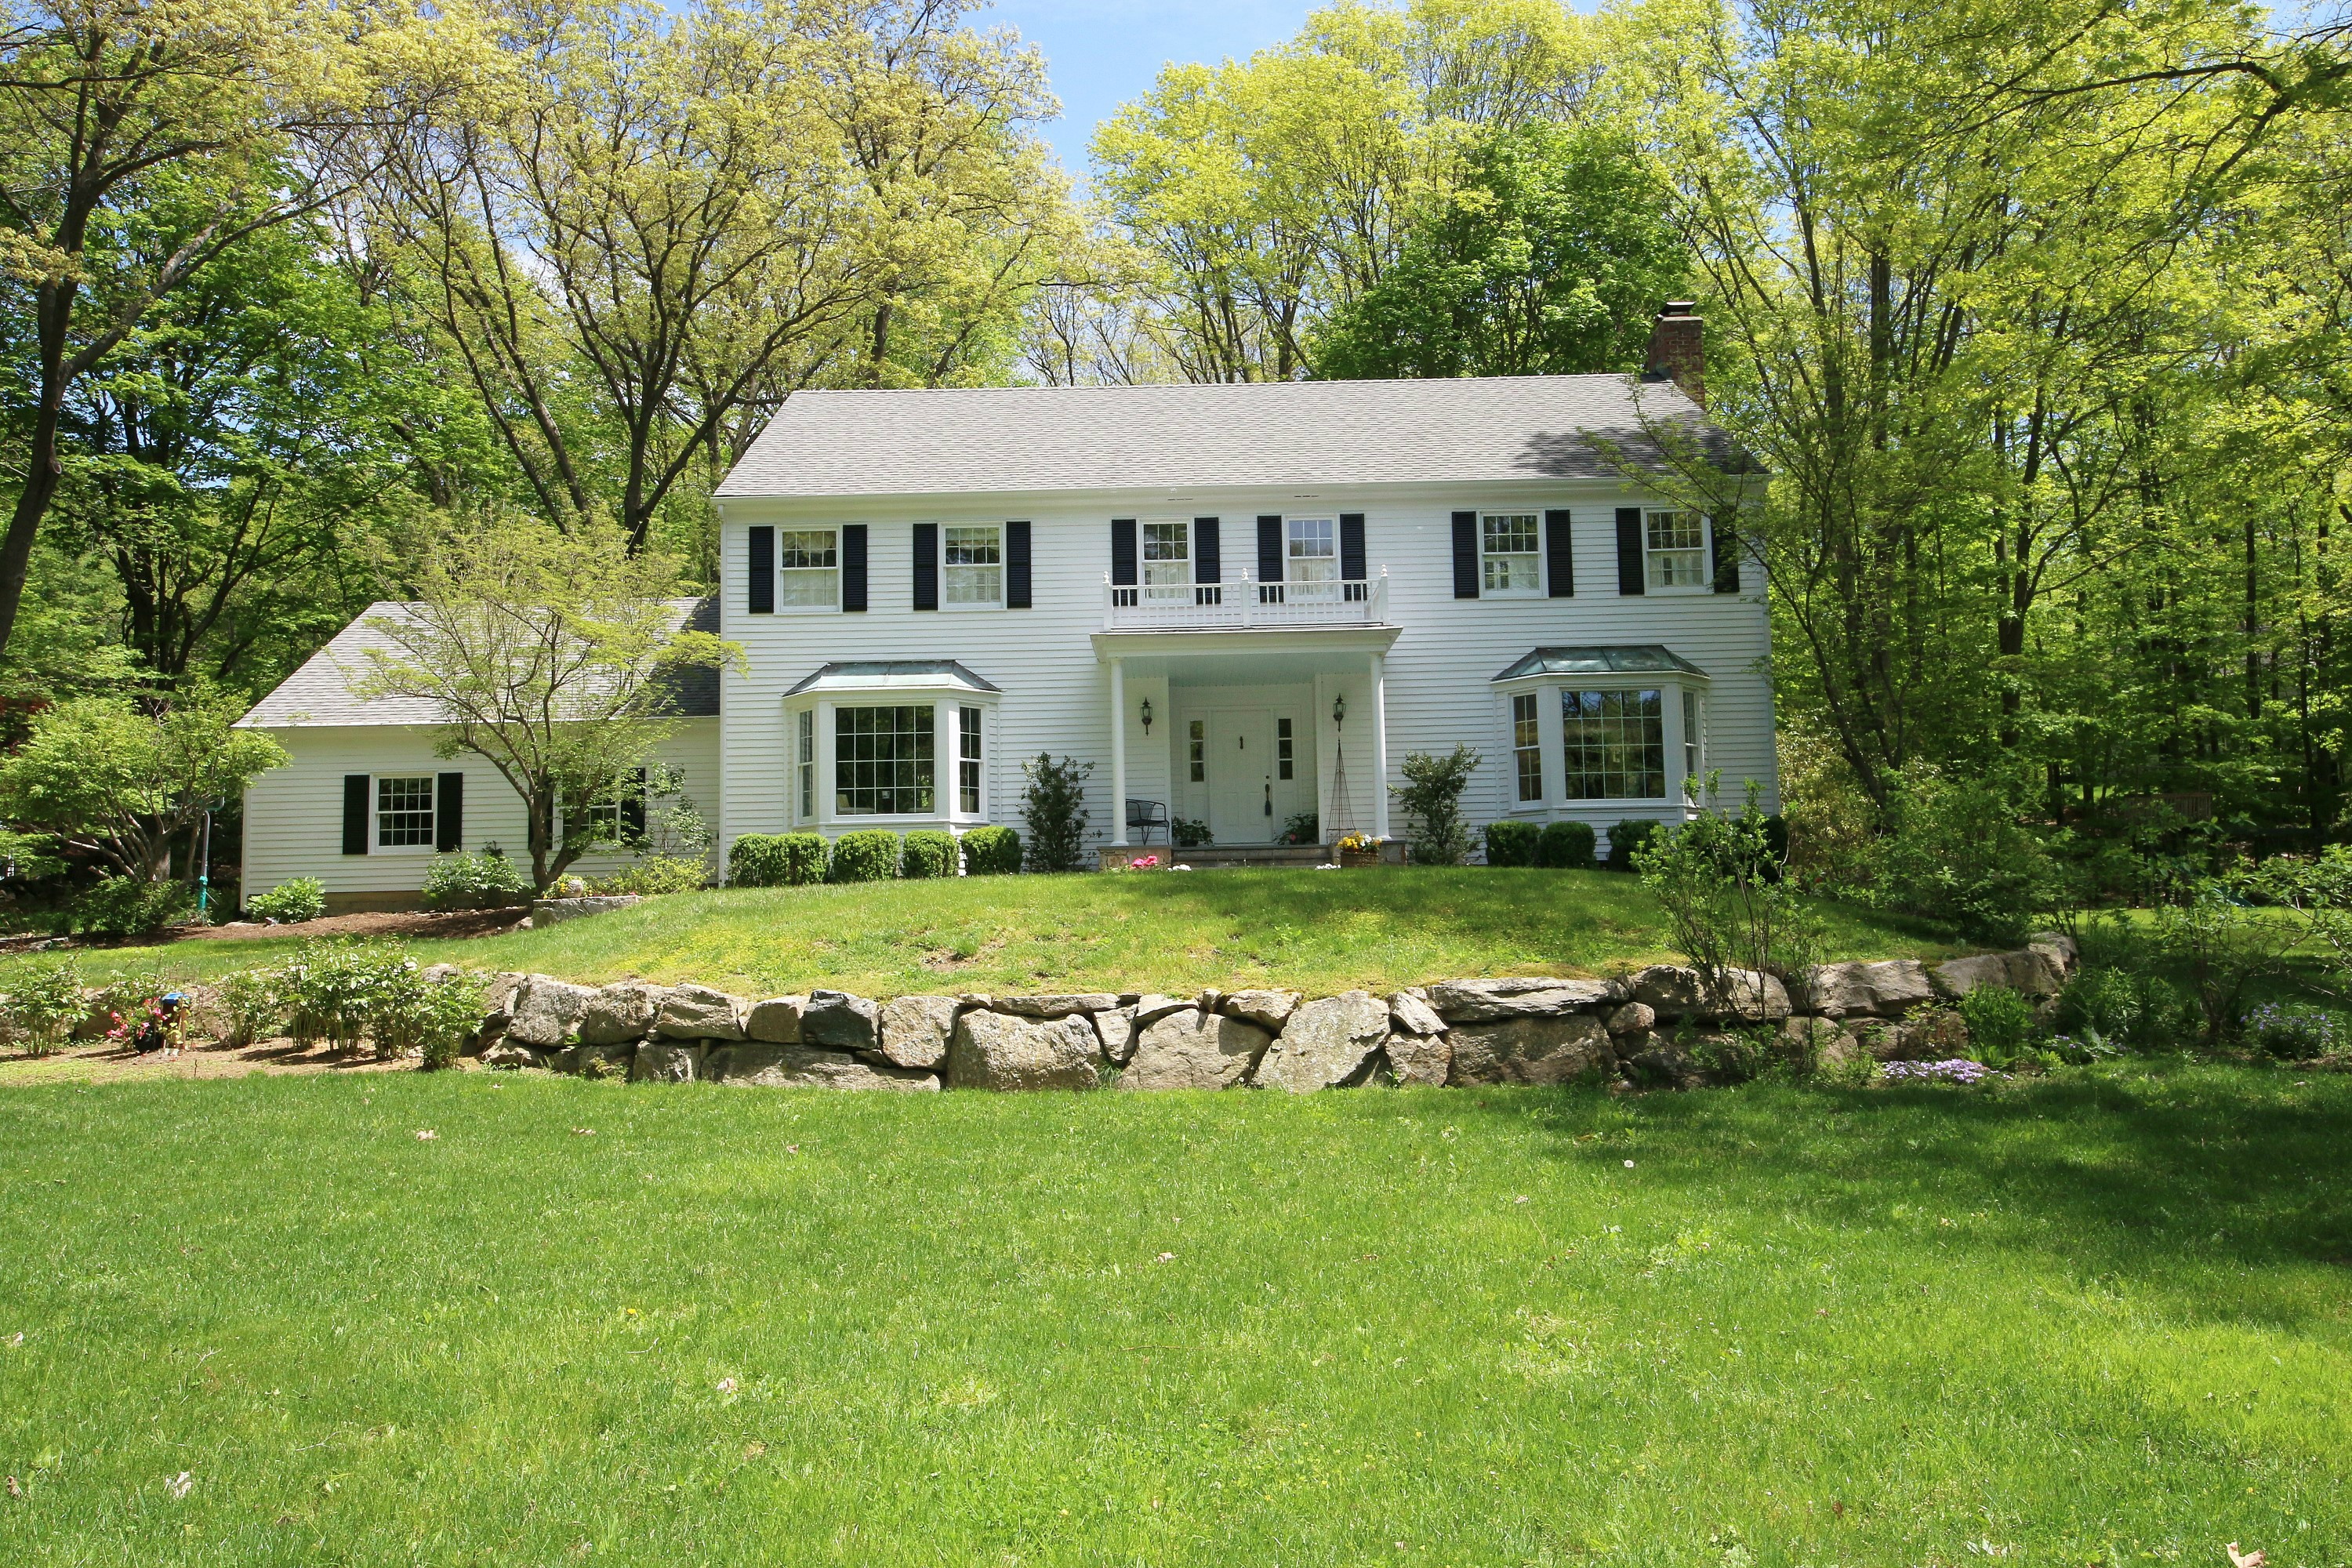 Casa Unifamiliar por un Venta en A Real Happy Home 133 Indian Cave Road Ridgefield, Connecticut, 06877 Estados Unidos